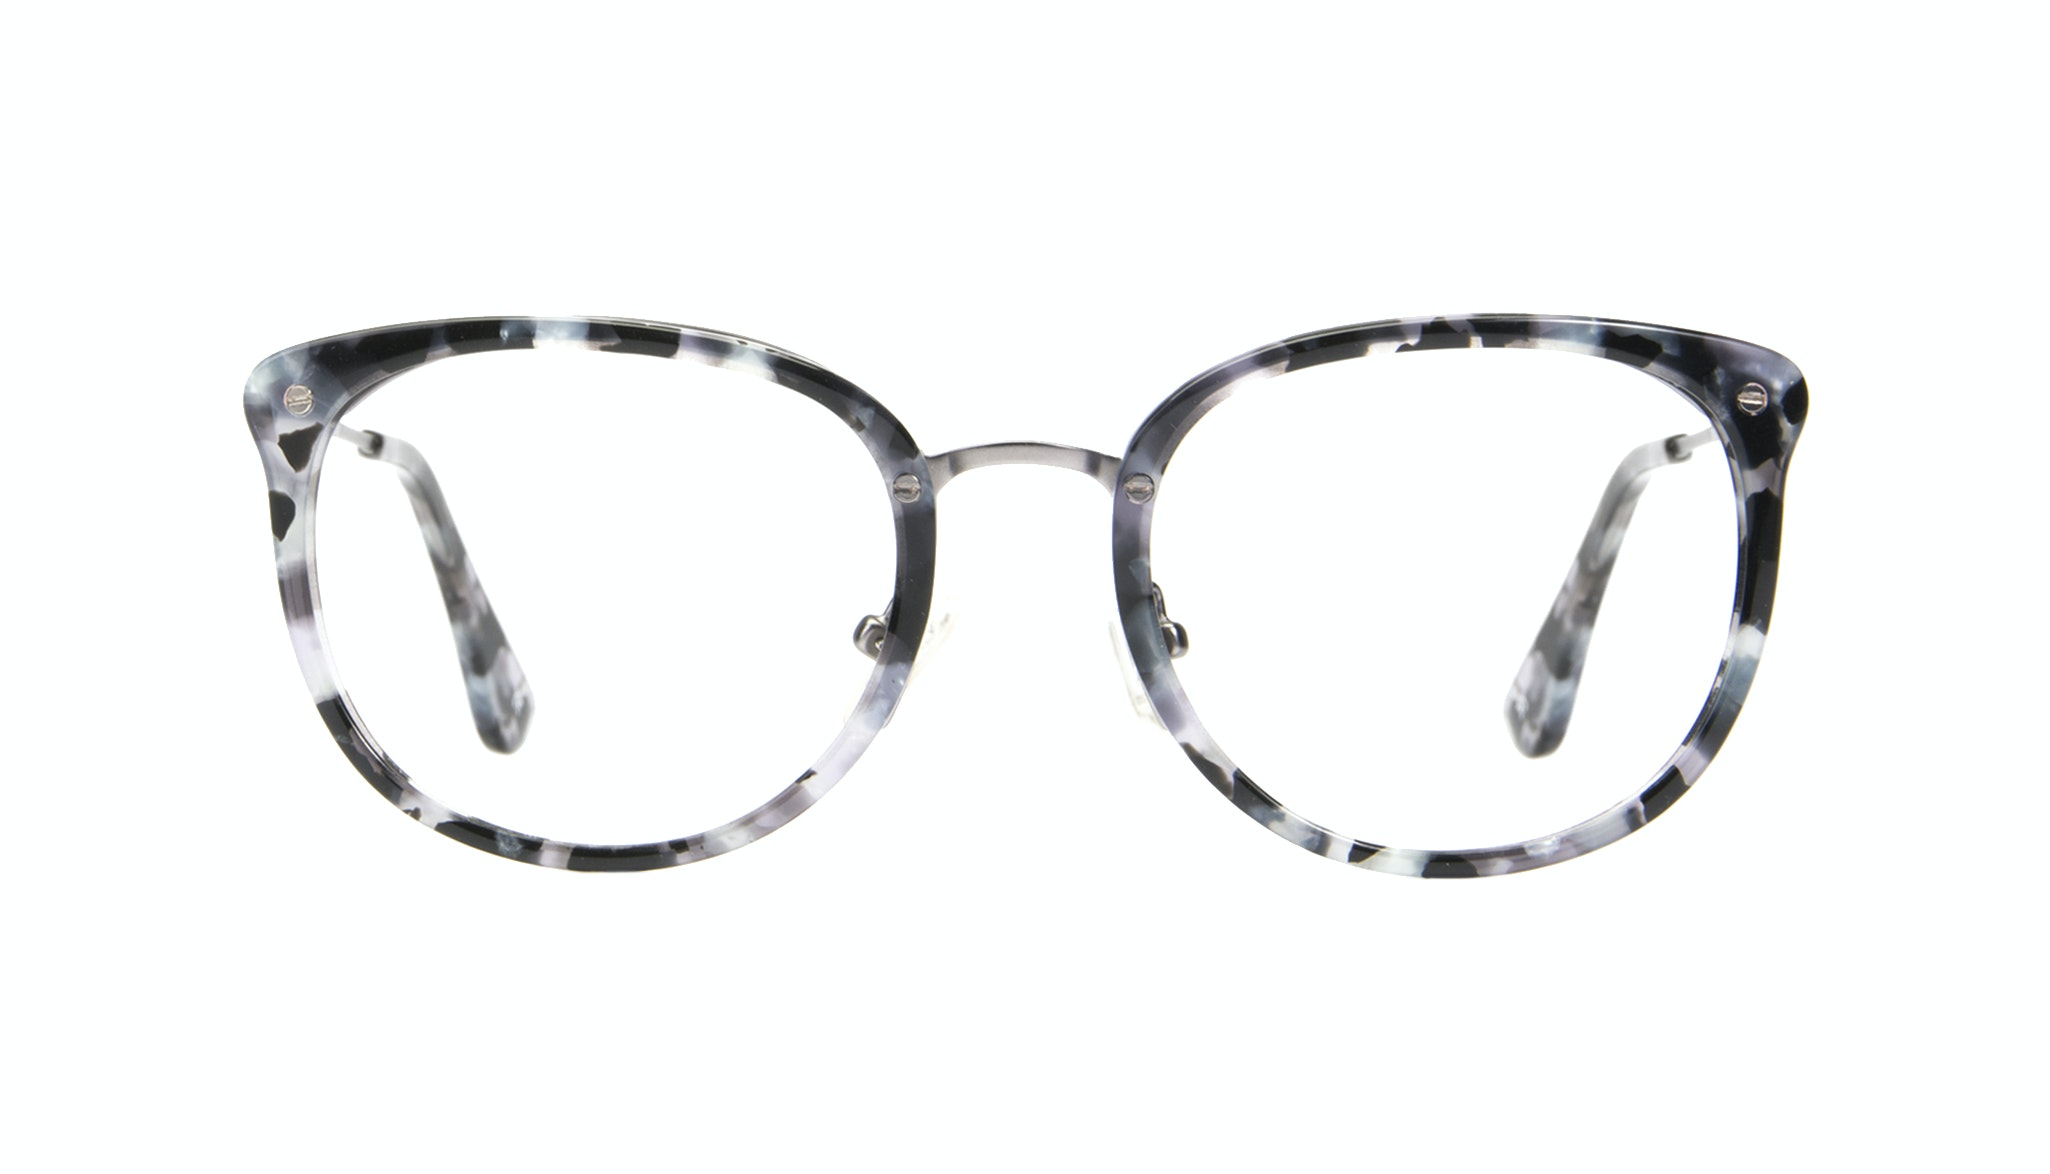 Affordable Fashion Glasses Square Round Eyeglasses Women Amaze Silver Flake